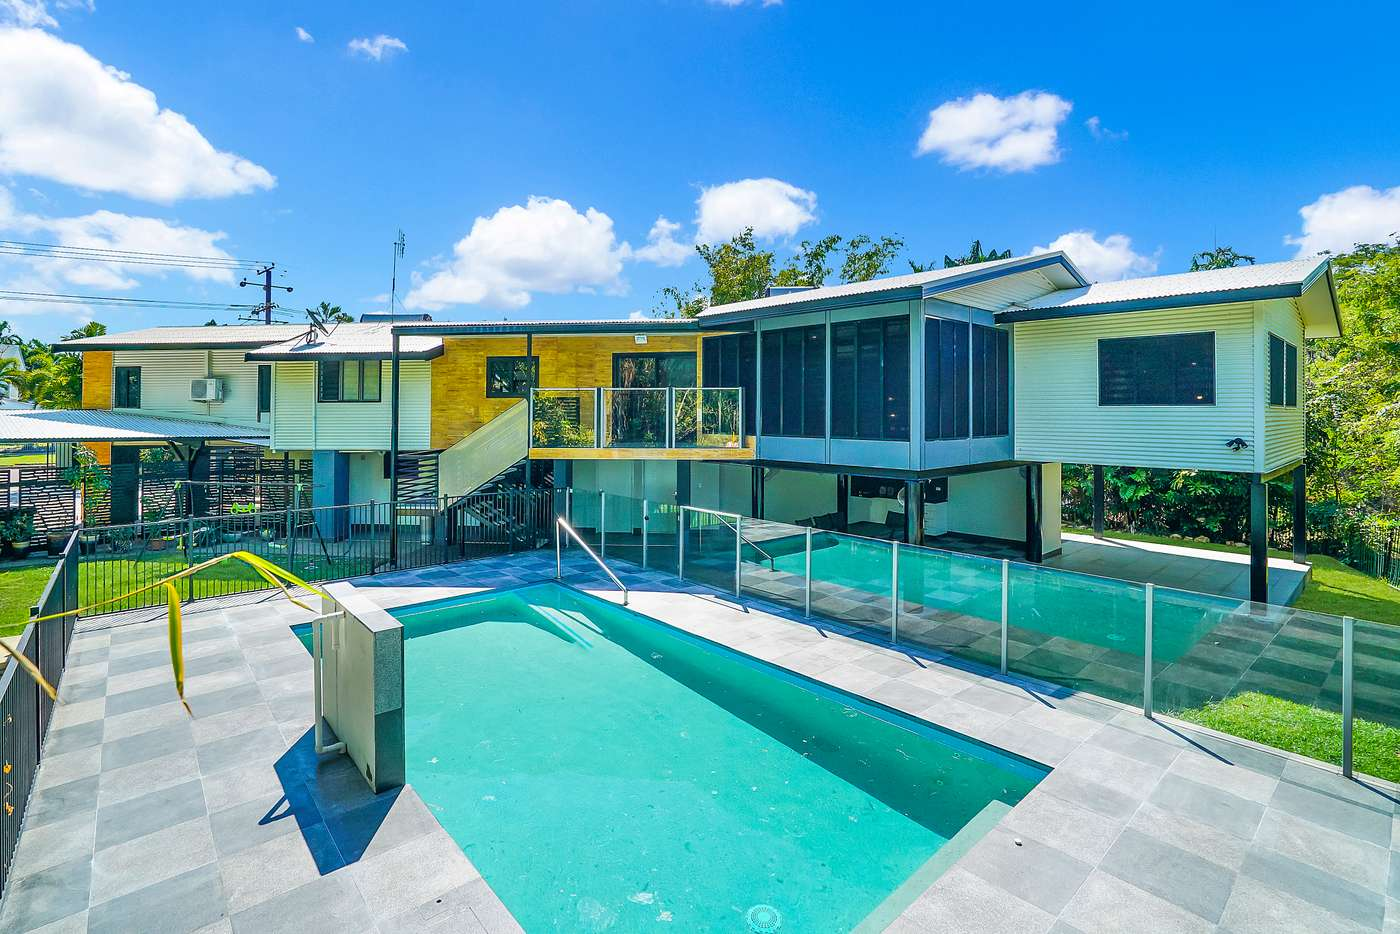 Main view of Homely house listing, 26 Packard Street, Larrakeyah NT 820